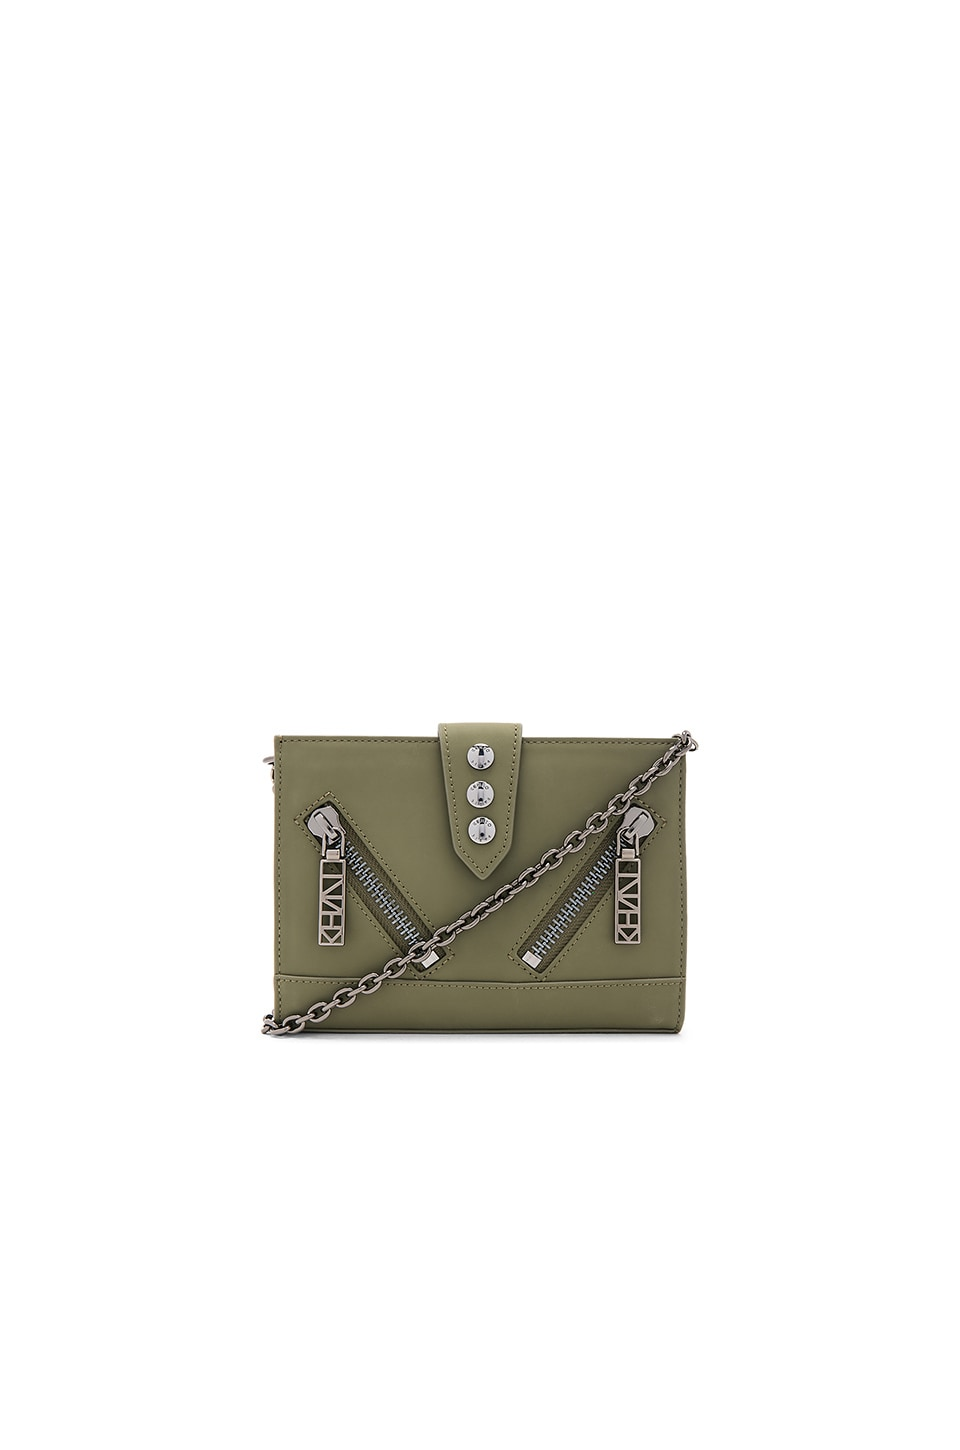 Kenzo Kalifornia Wallet On Chain in Military Green